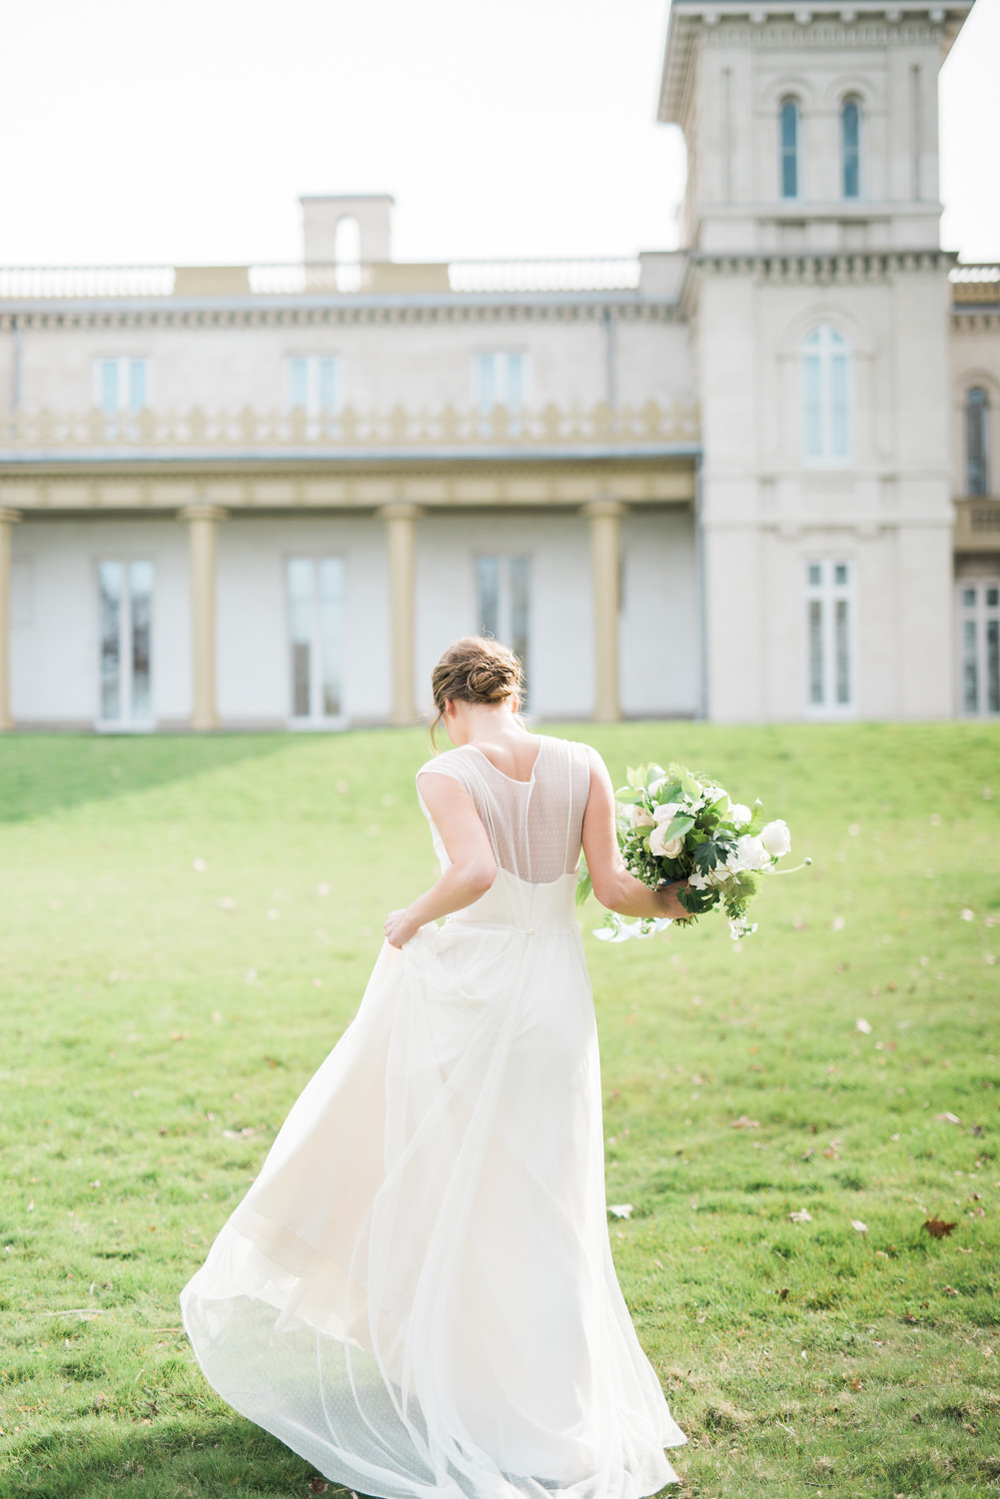 Dundurn Castle Wedding, Hamilton Wedding Photographer Nikki Mills